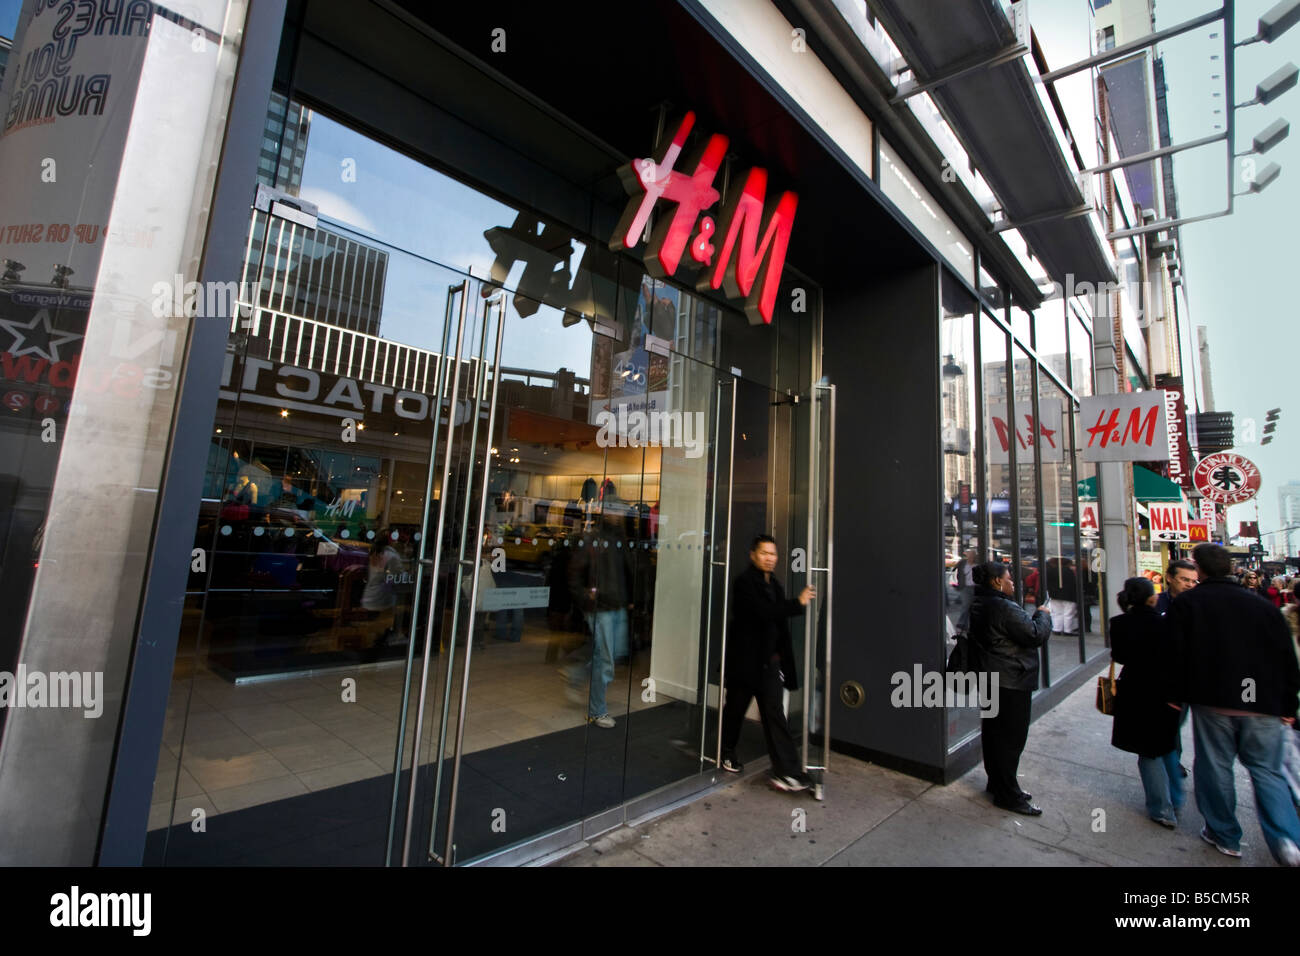 A shopper is seen exiting a branch of H&M in New York. Stock Photo